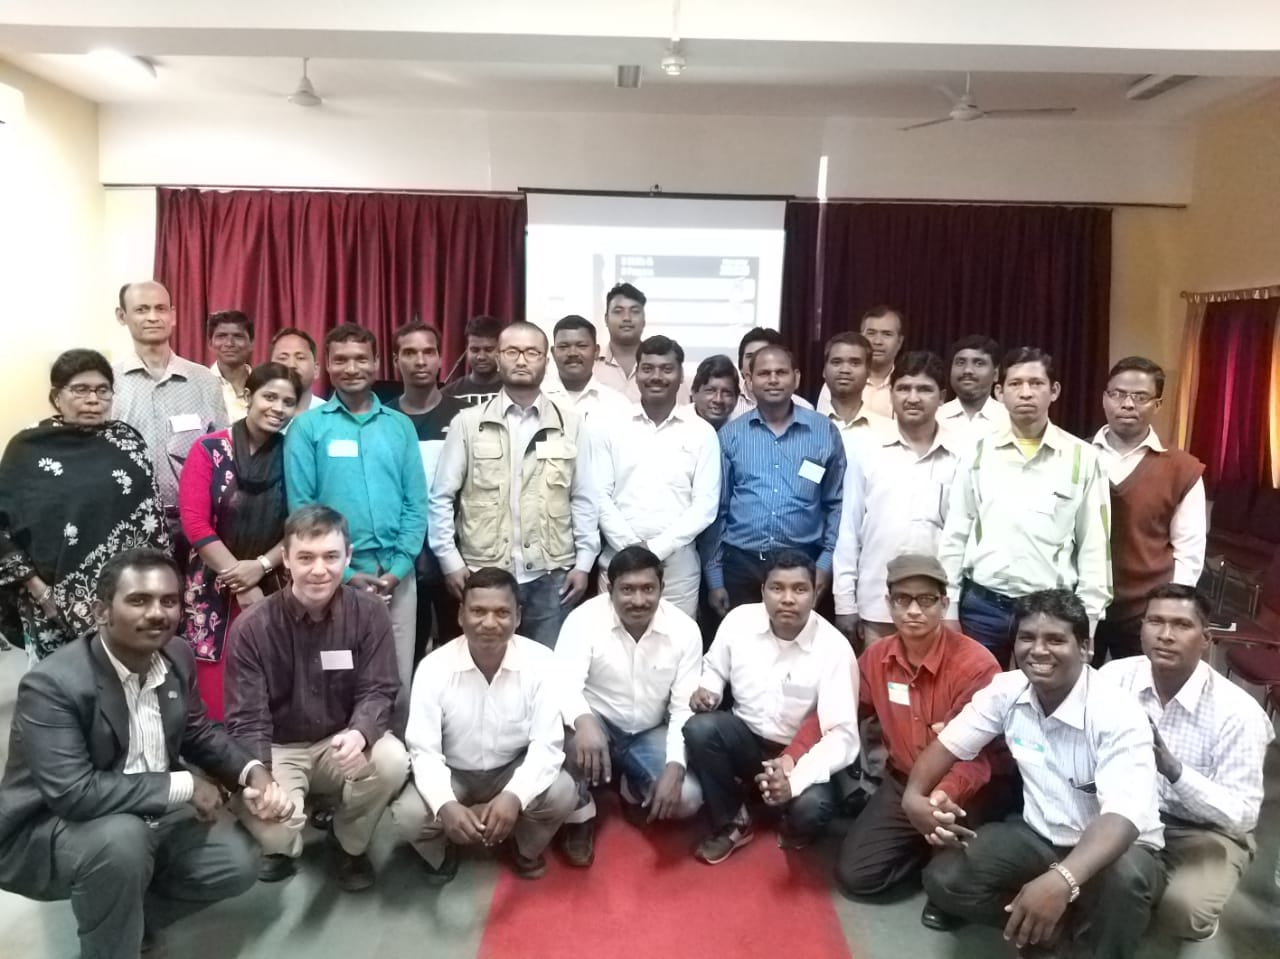 Feb 2019 India Discipleship Seminar 02.jpeg